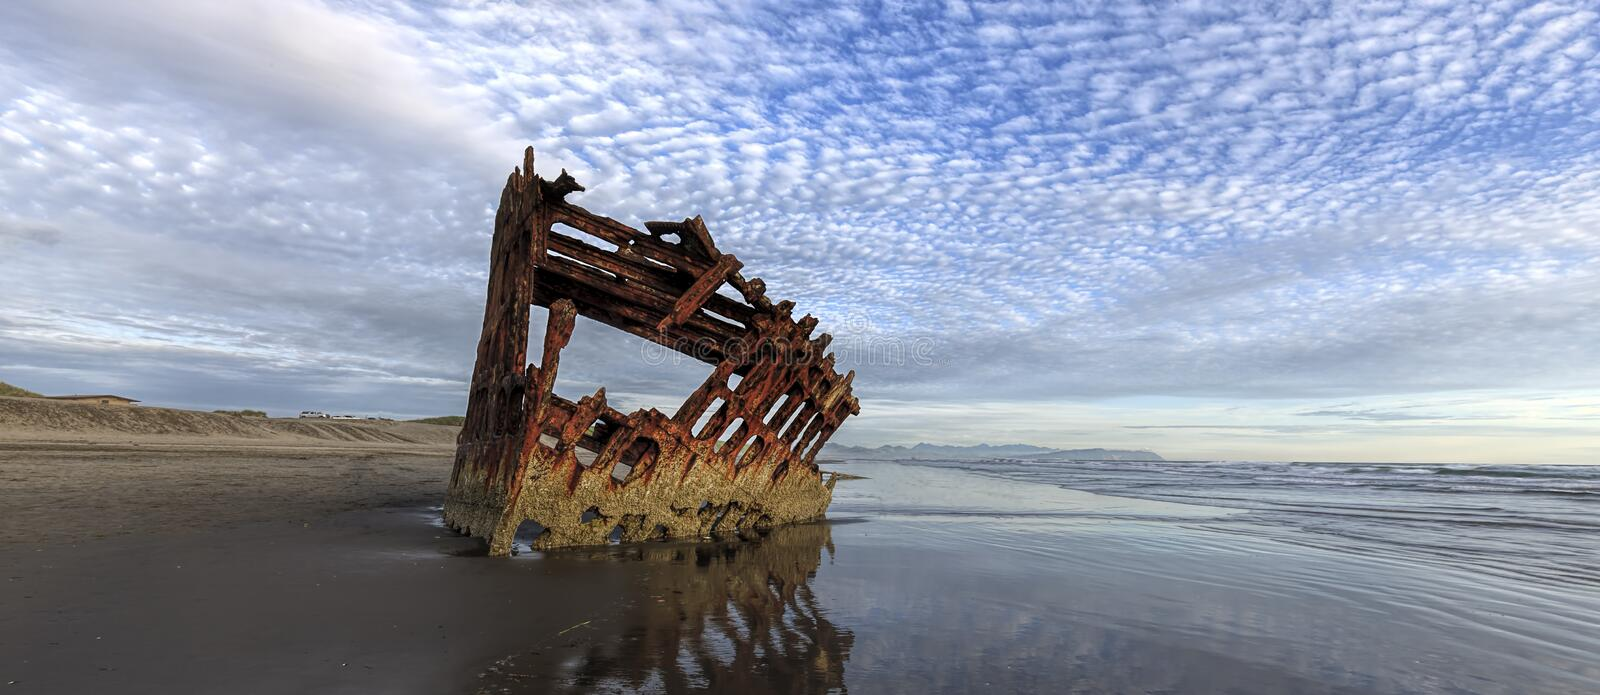 Panorama Peter Iredale shipwreck w Oregon obrazy stock